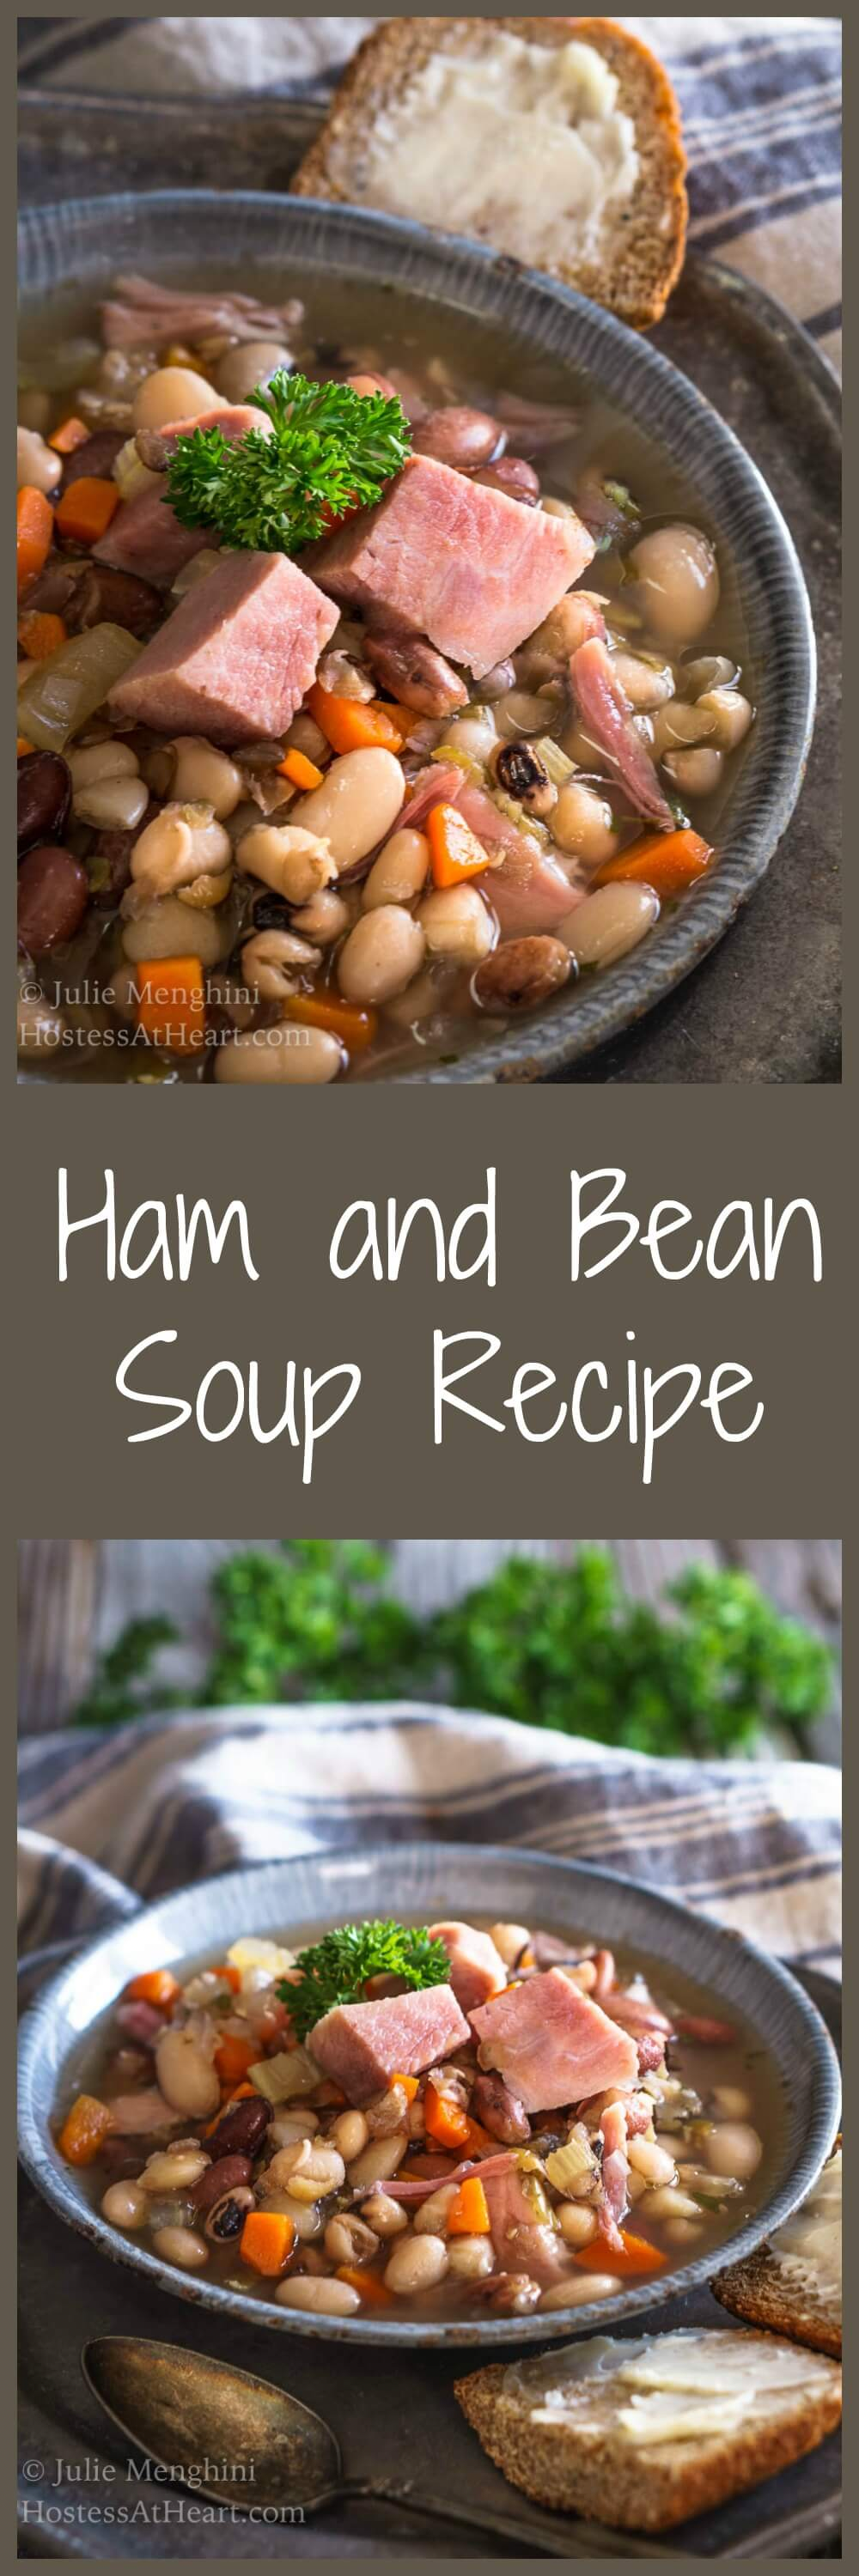 This Ham and Bean Soup Recipe is perfect for lunch or dinner. It's a hearty protein-packed soup that will keep you satisfied long after a meal. This recipe will feed a crowd or freezes well. #souprecipe #comfortfood #homemade | Homemade Soup | Easy Soup Recipe